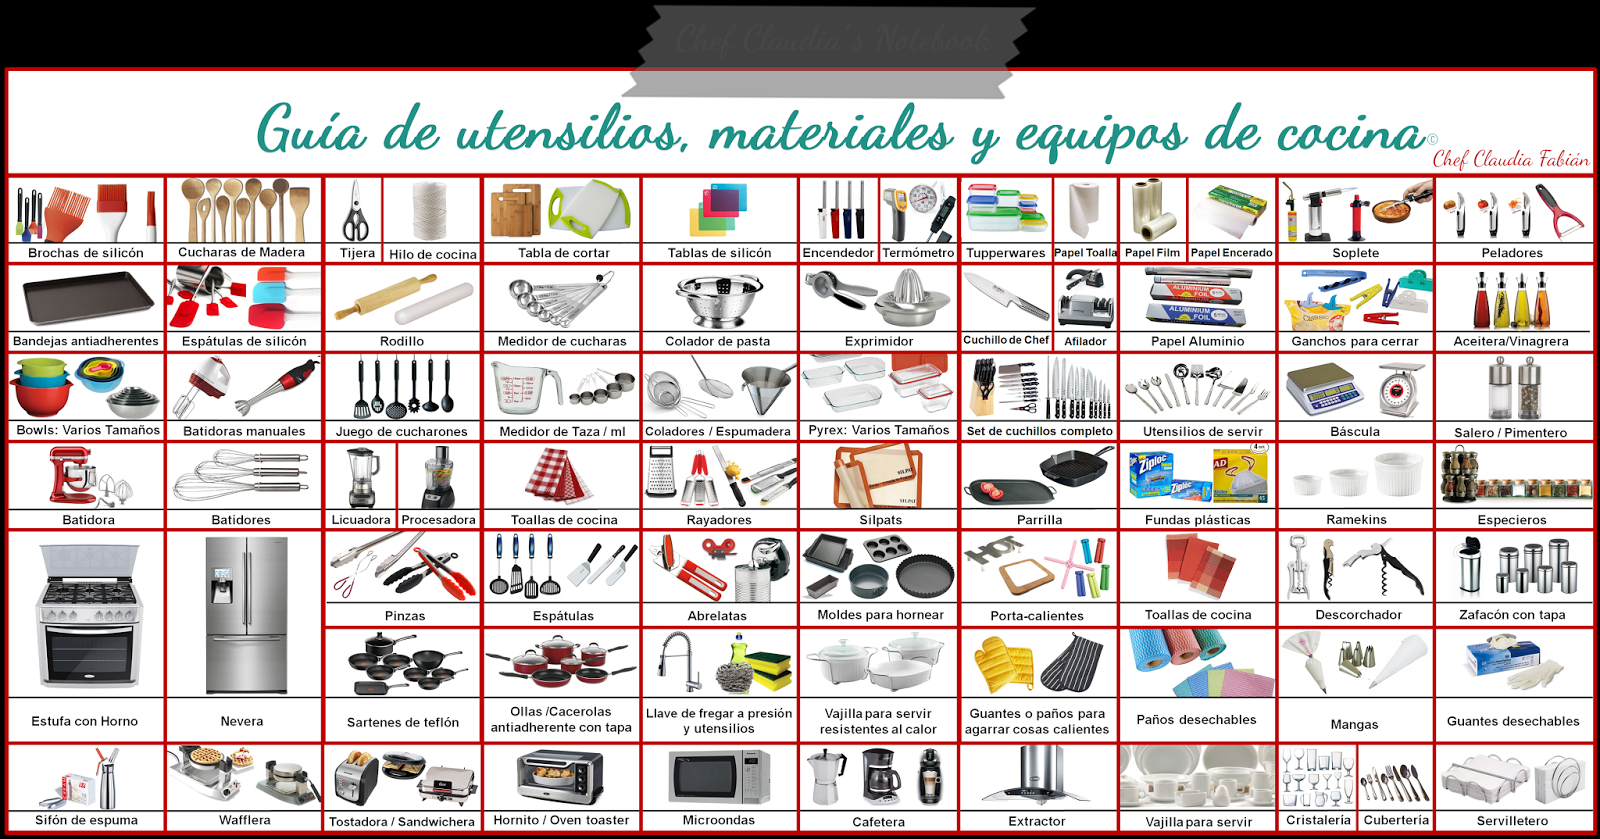 Chef claudia s notebook gu a de utensilios equipos y for Materiales de cocina